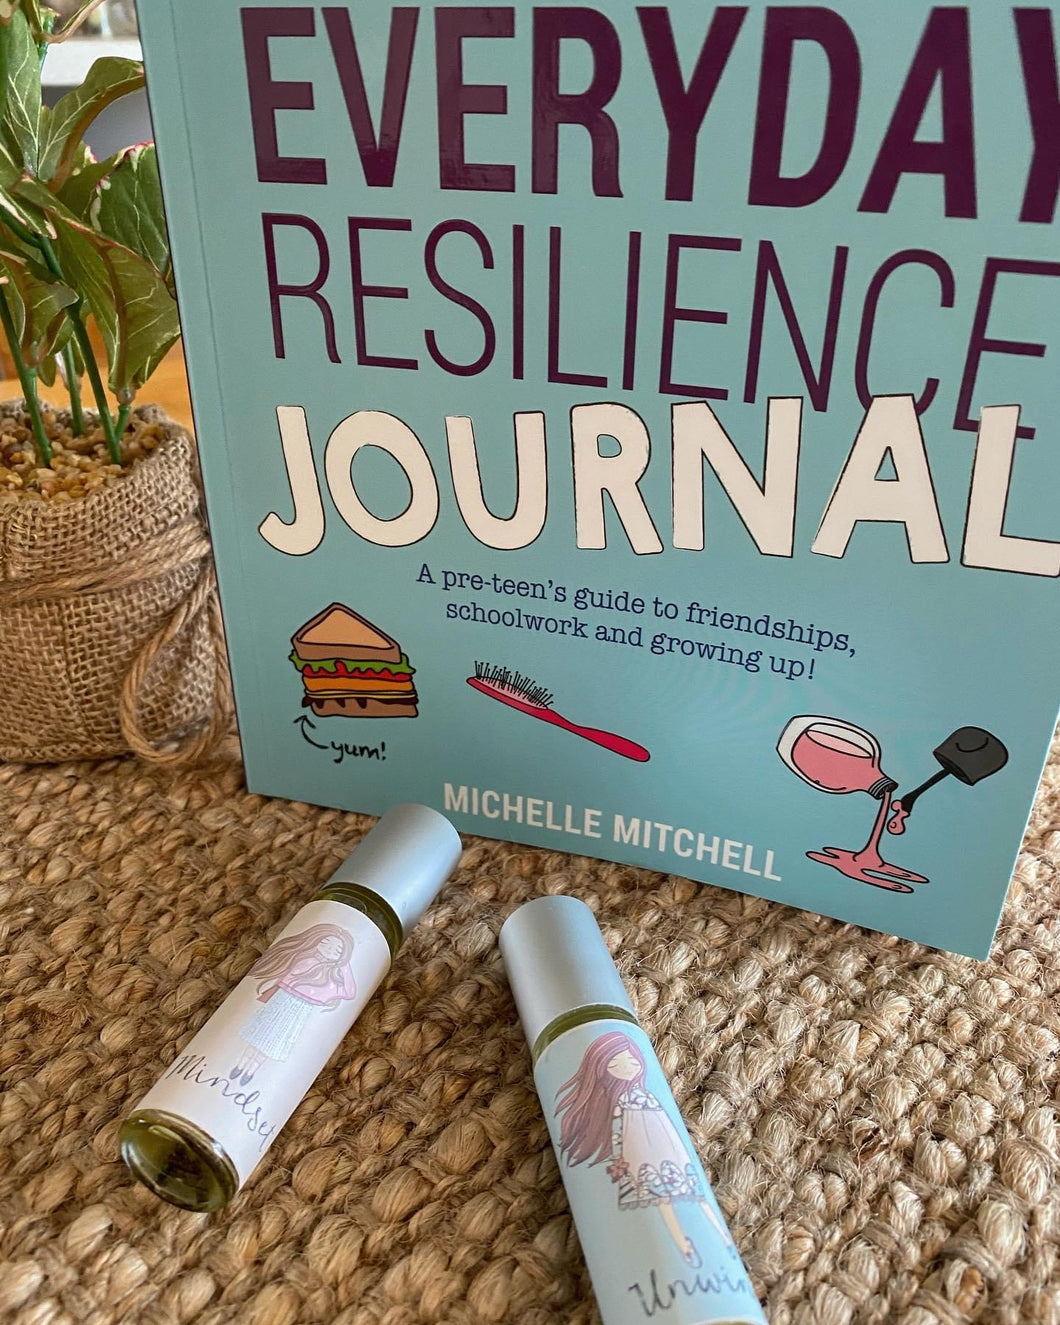 Everyday Resilience Journal